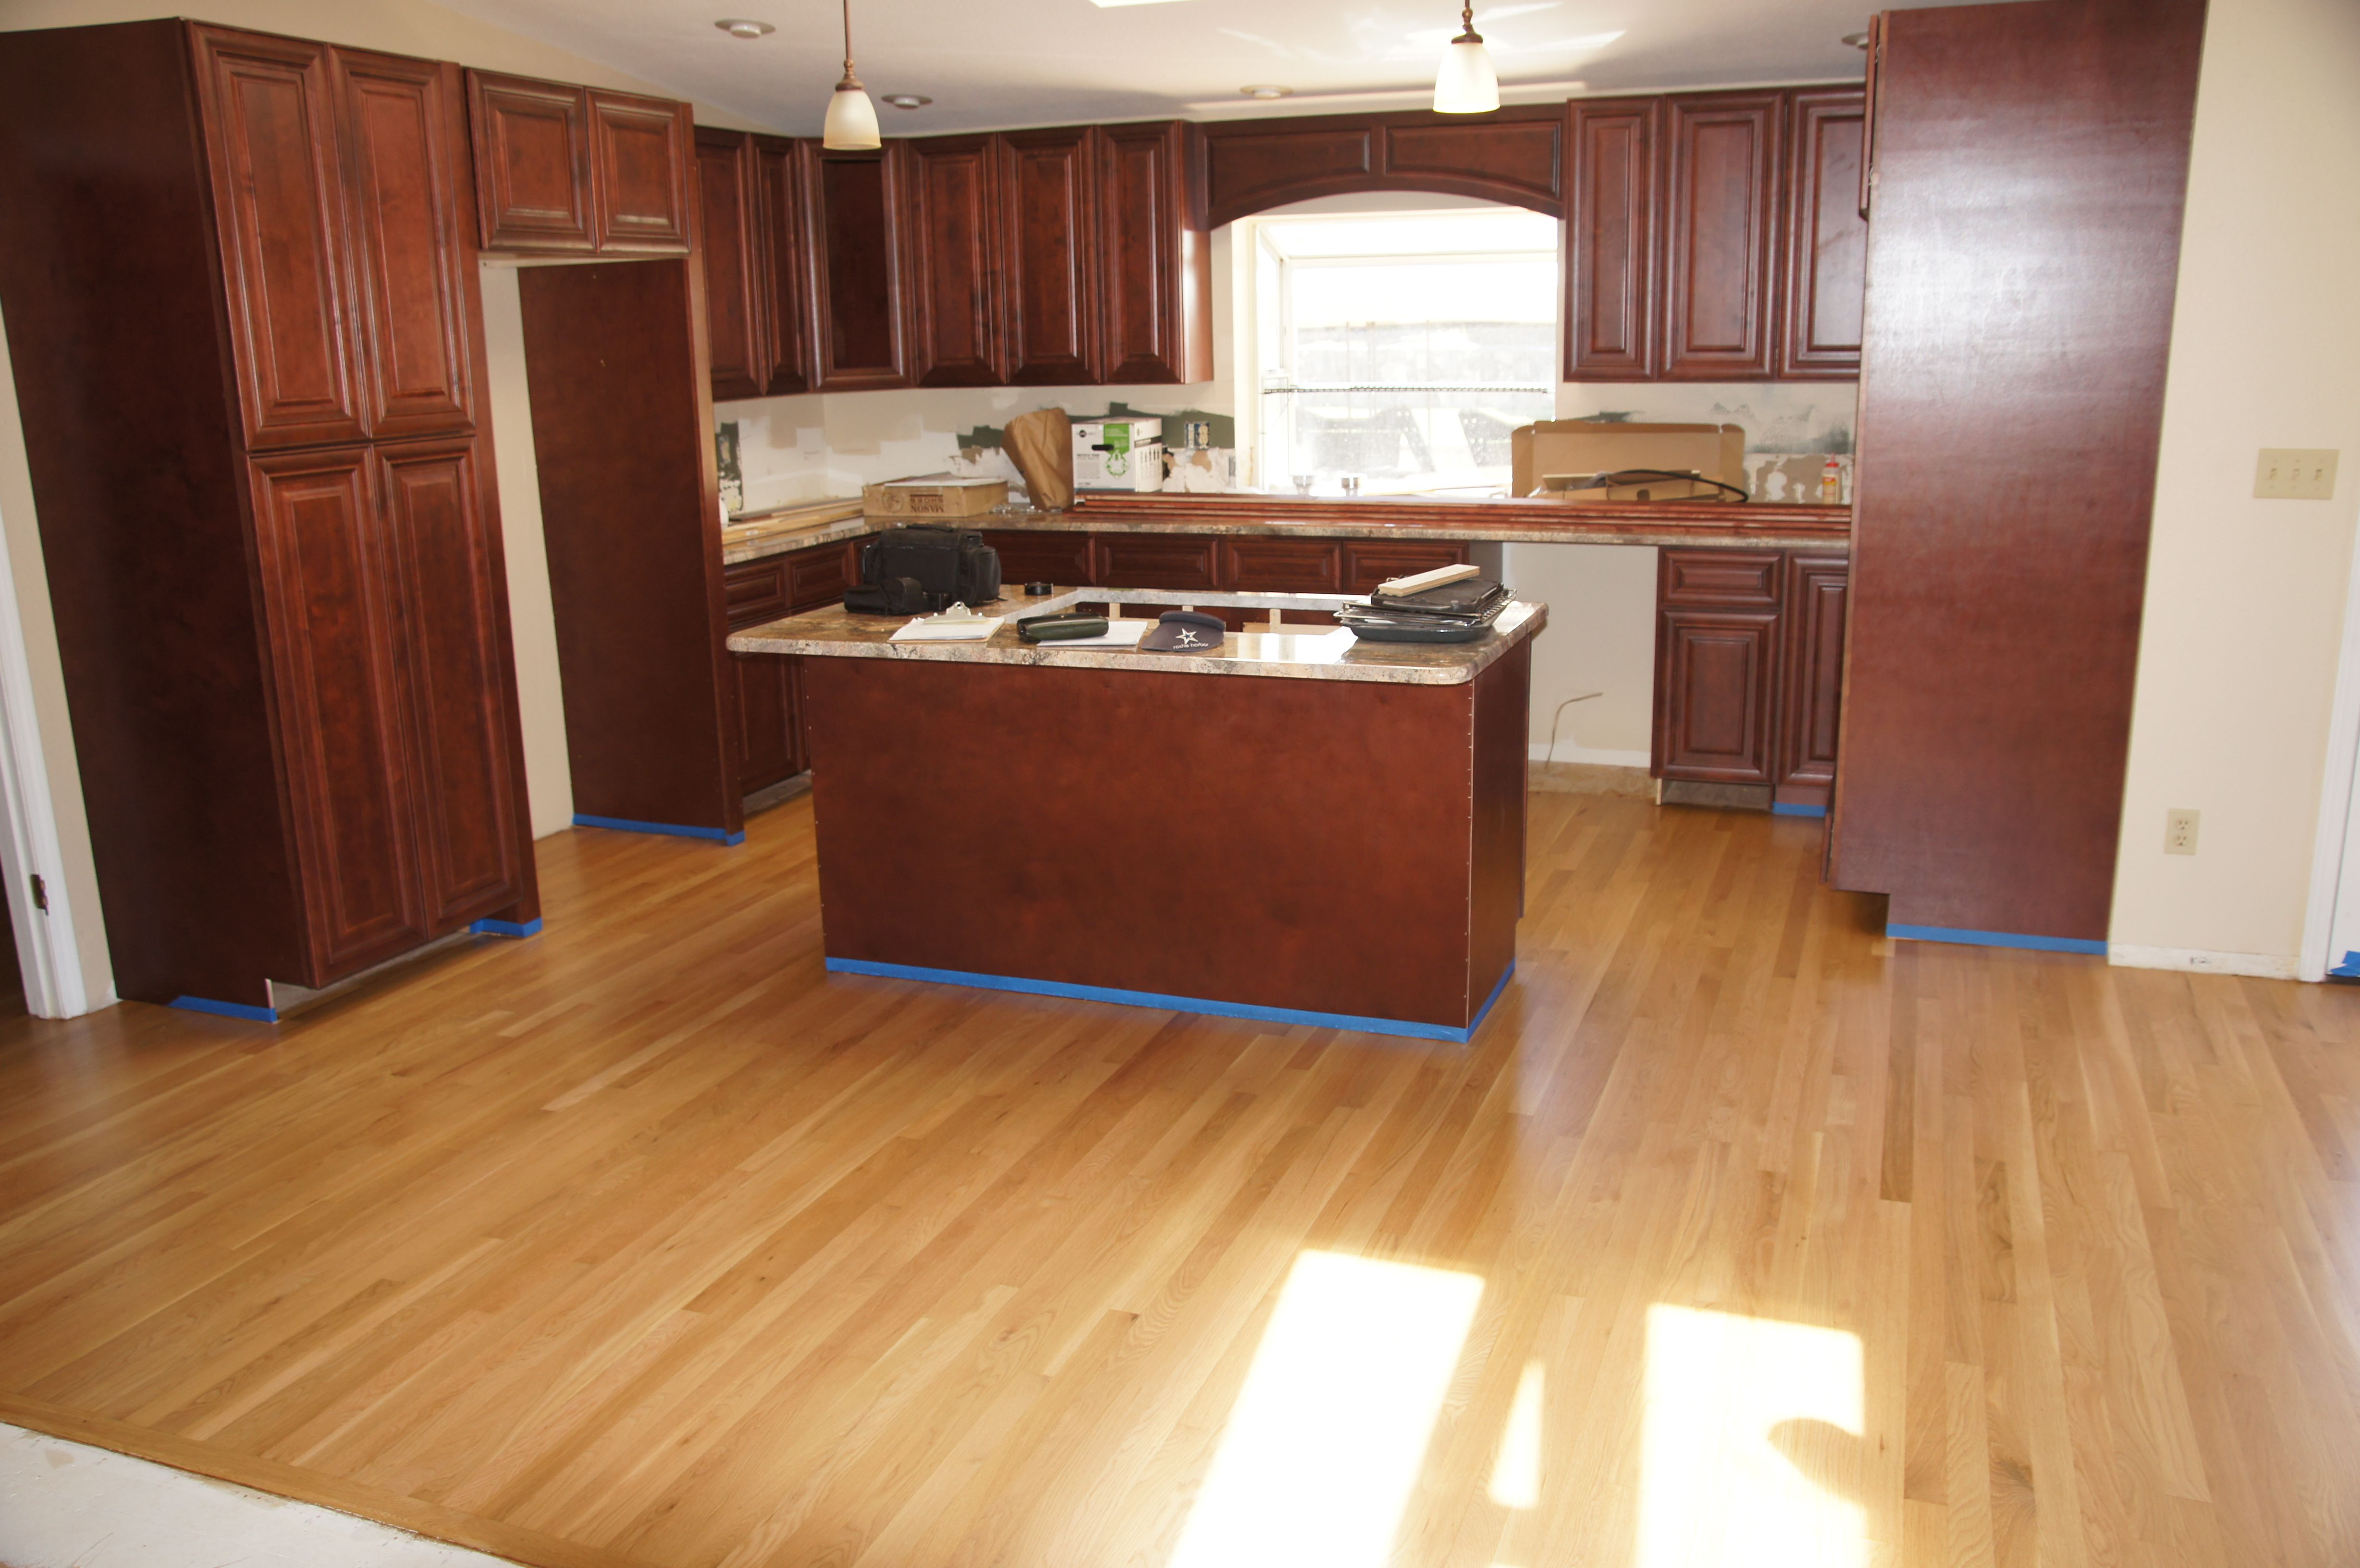 A refinish job we completed in Vancouver, Washington. The